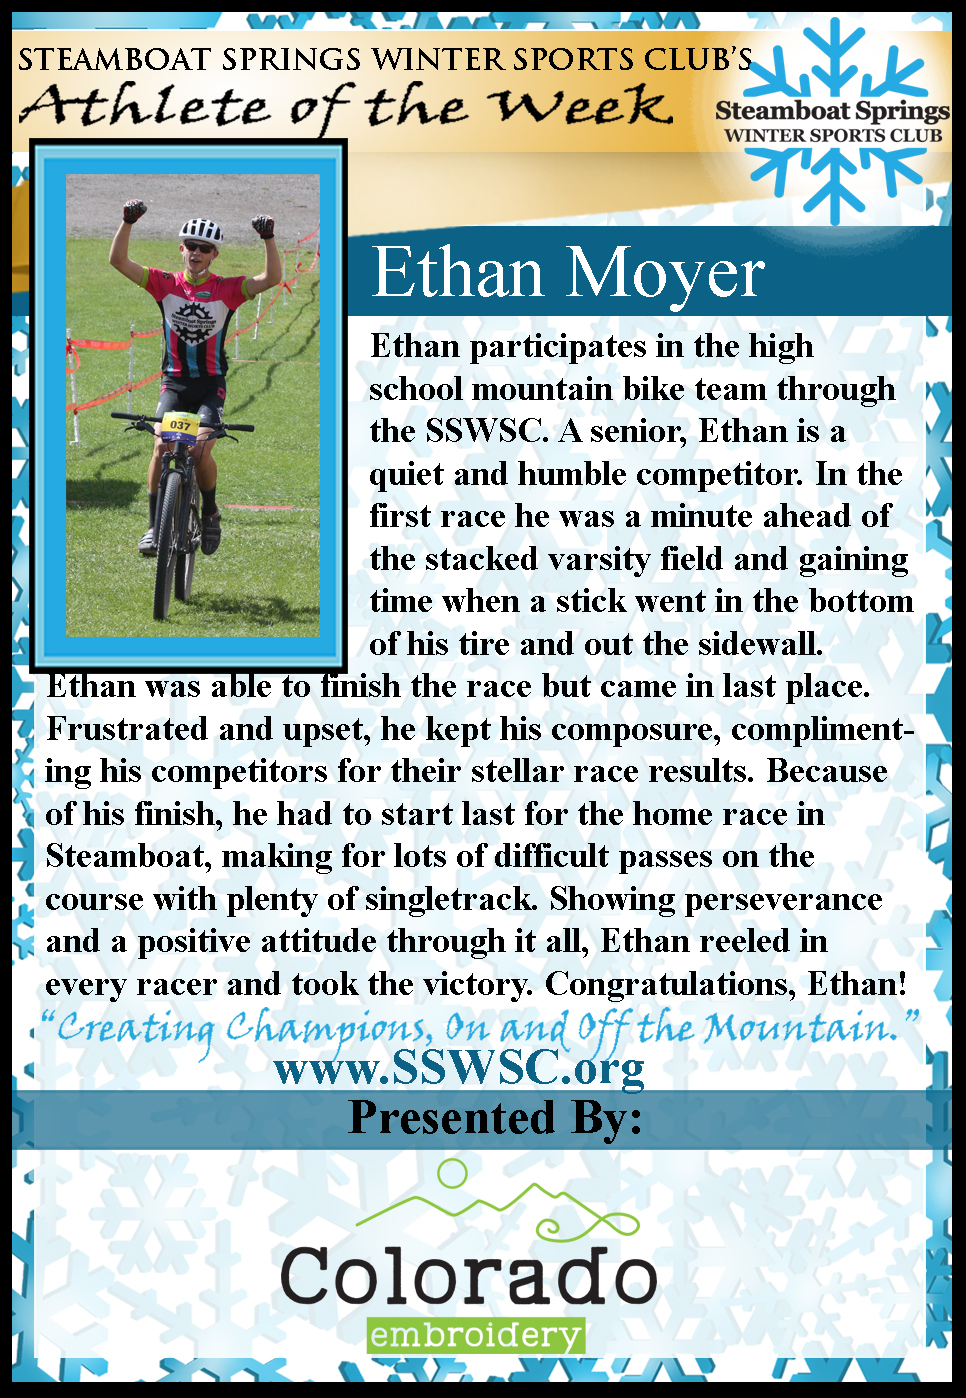 Athlete of the Week Ethan Moyer